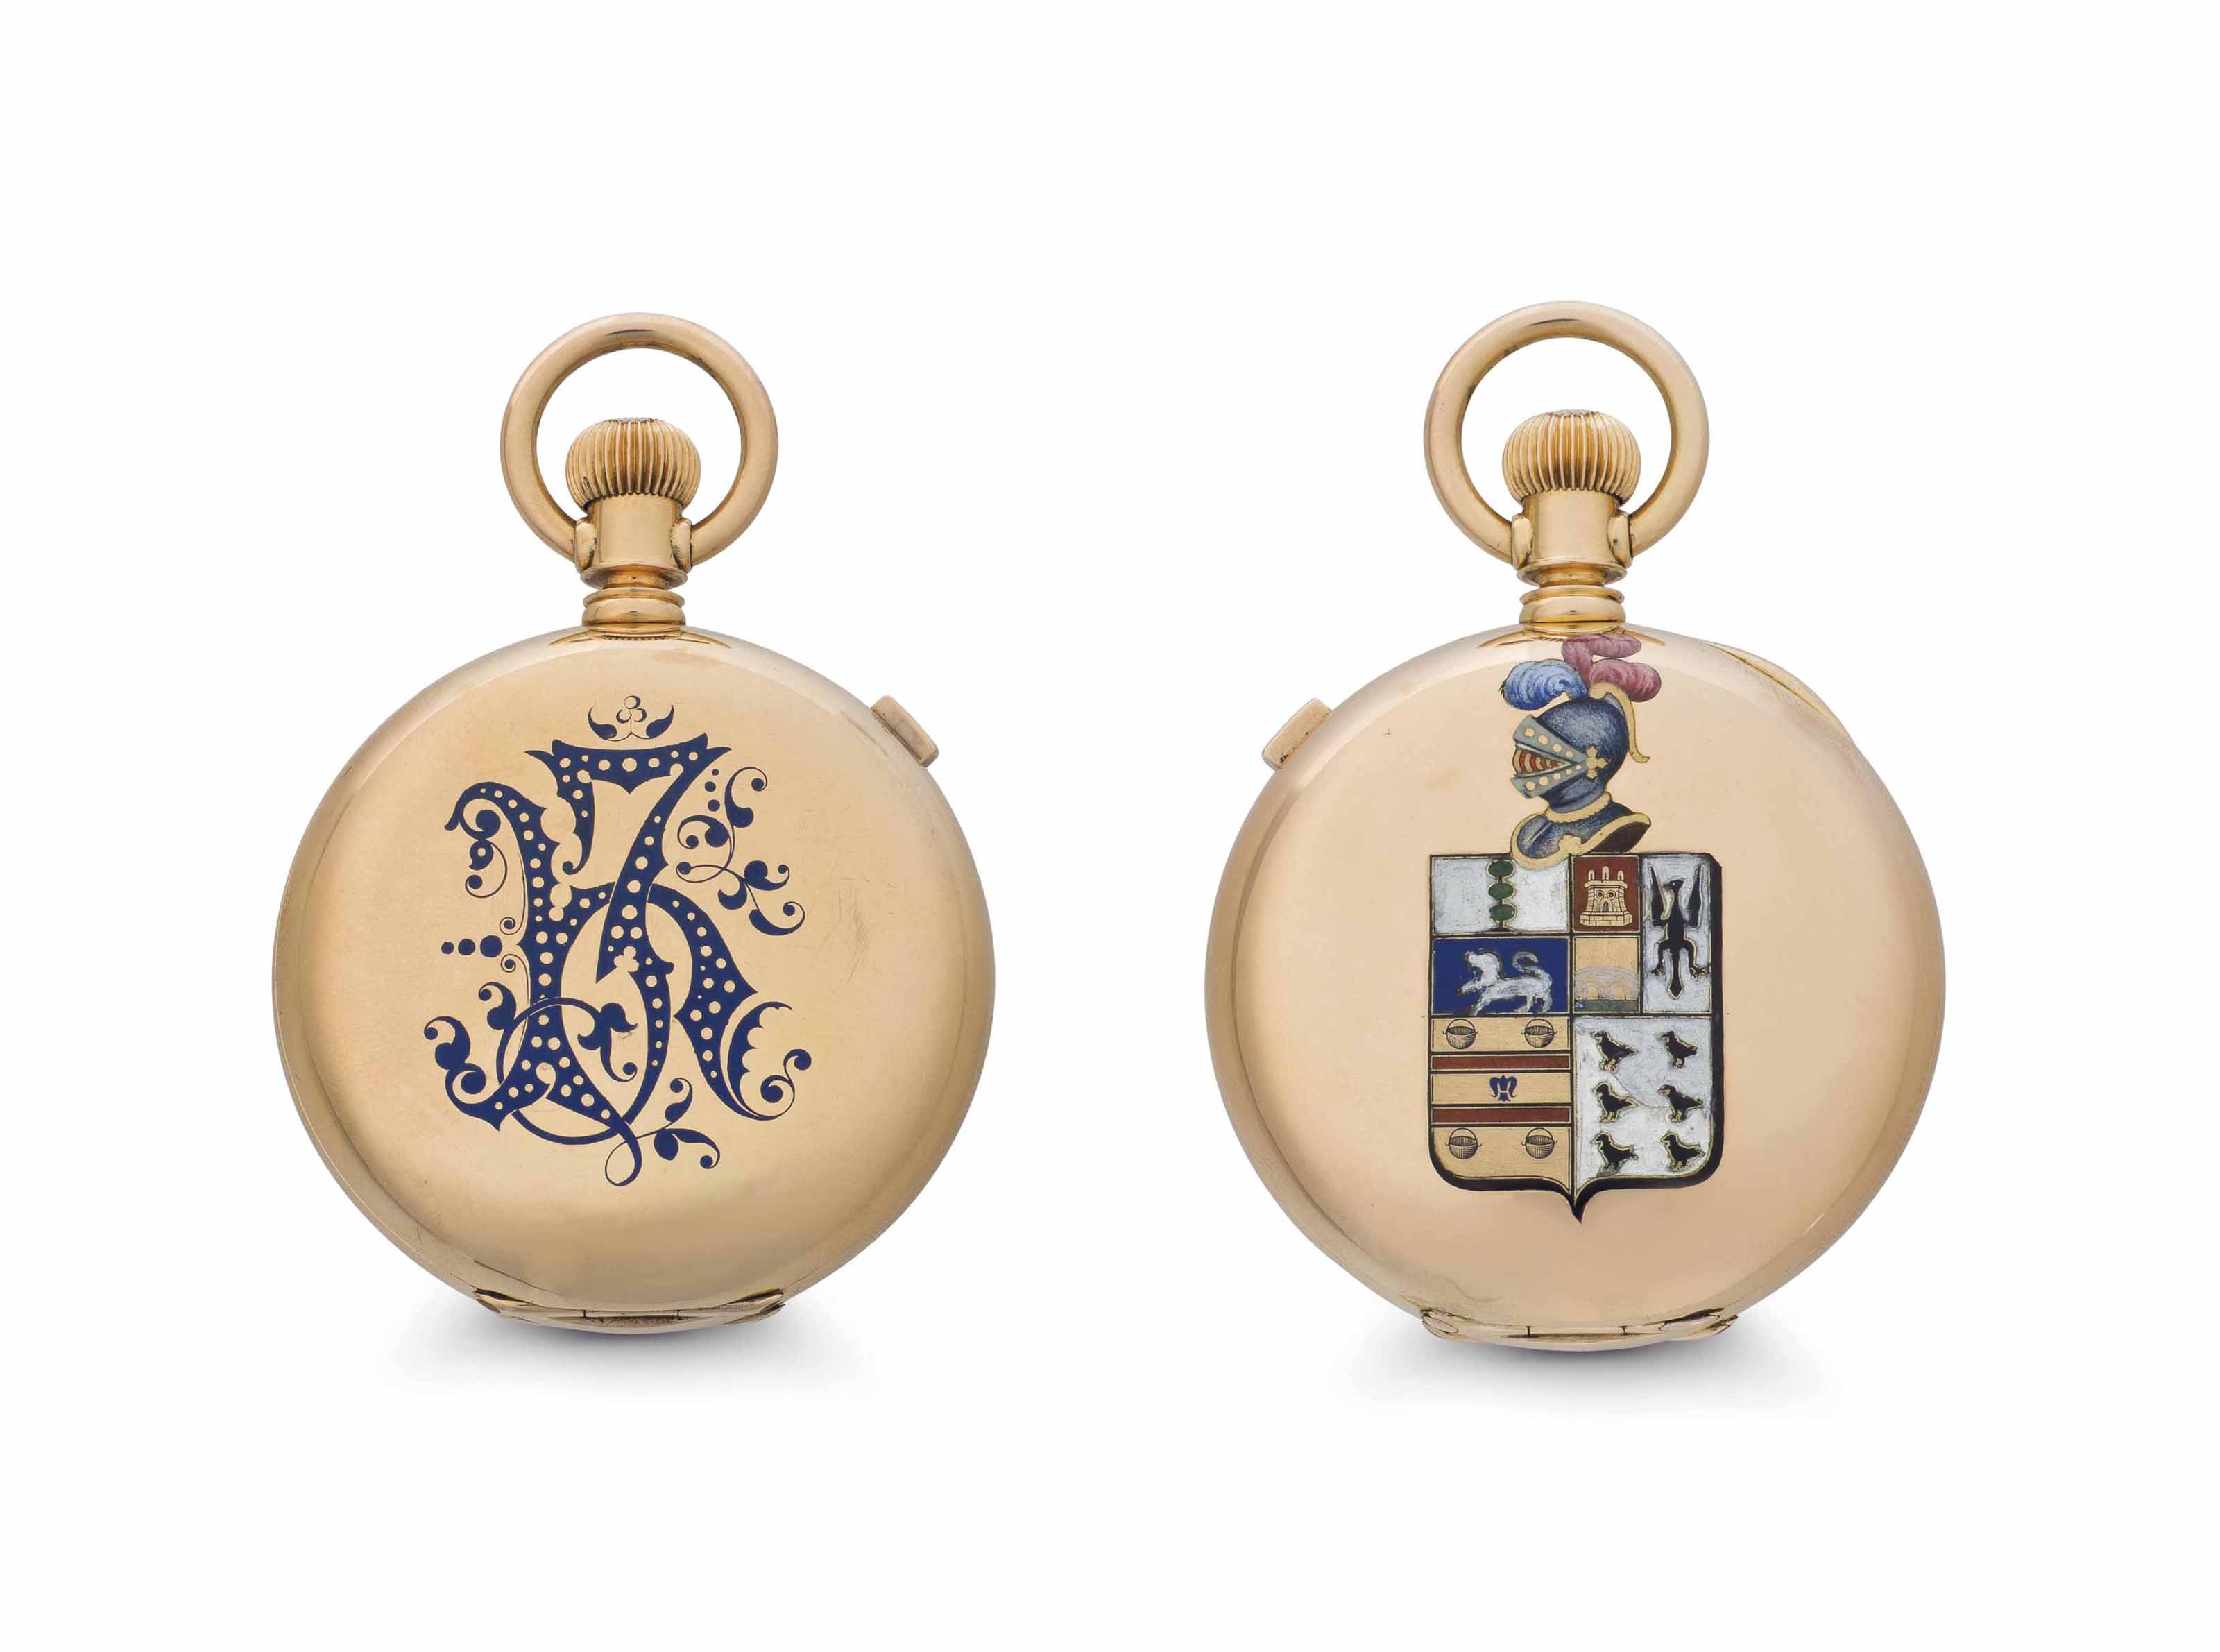 Waltham. A Rare 18k Gold and Enamel Hunter Case Keyless Lever Chronograph Pocket Watch with Personalized Dial